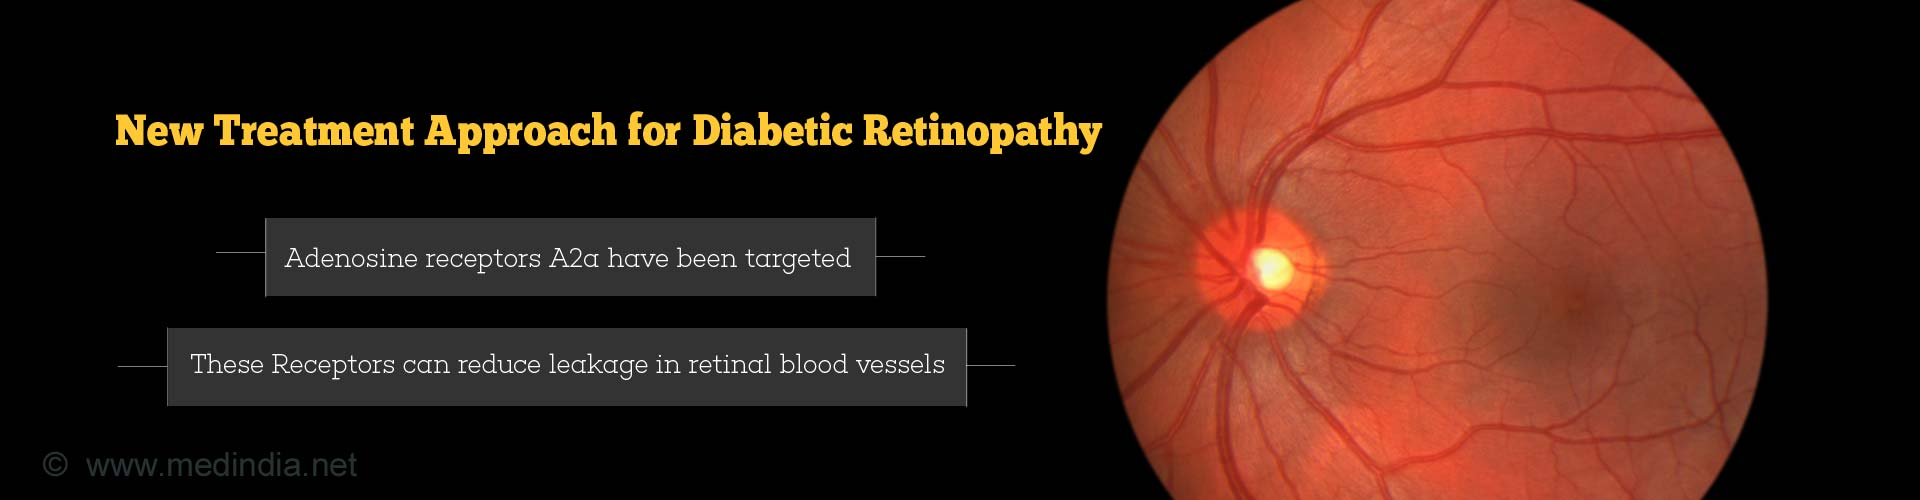 New Target for Diabetic Retinopathy Found